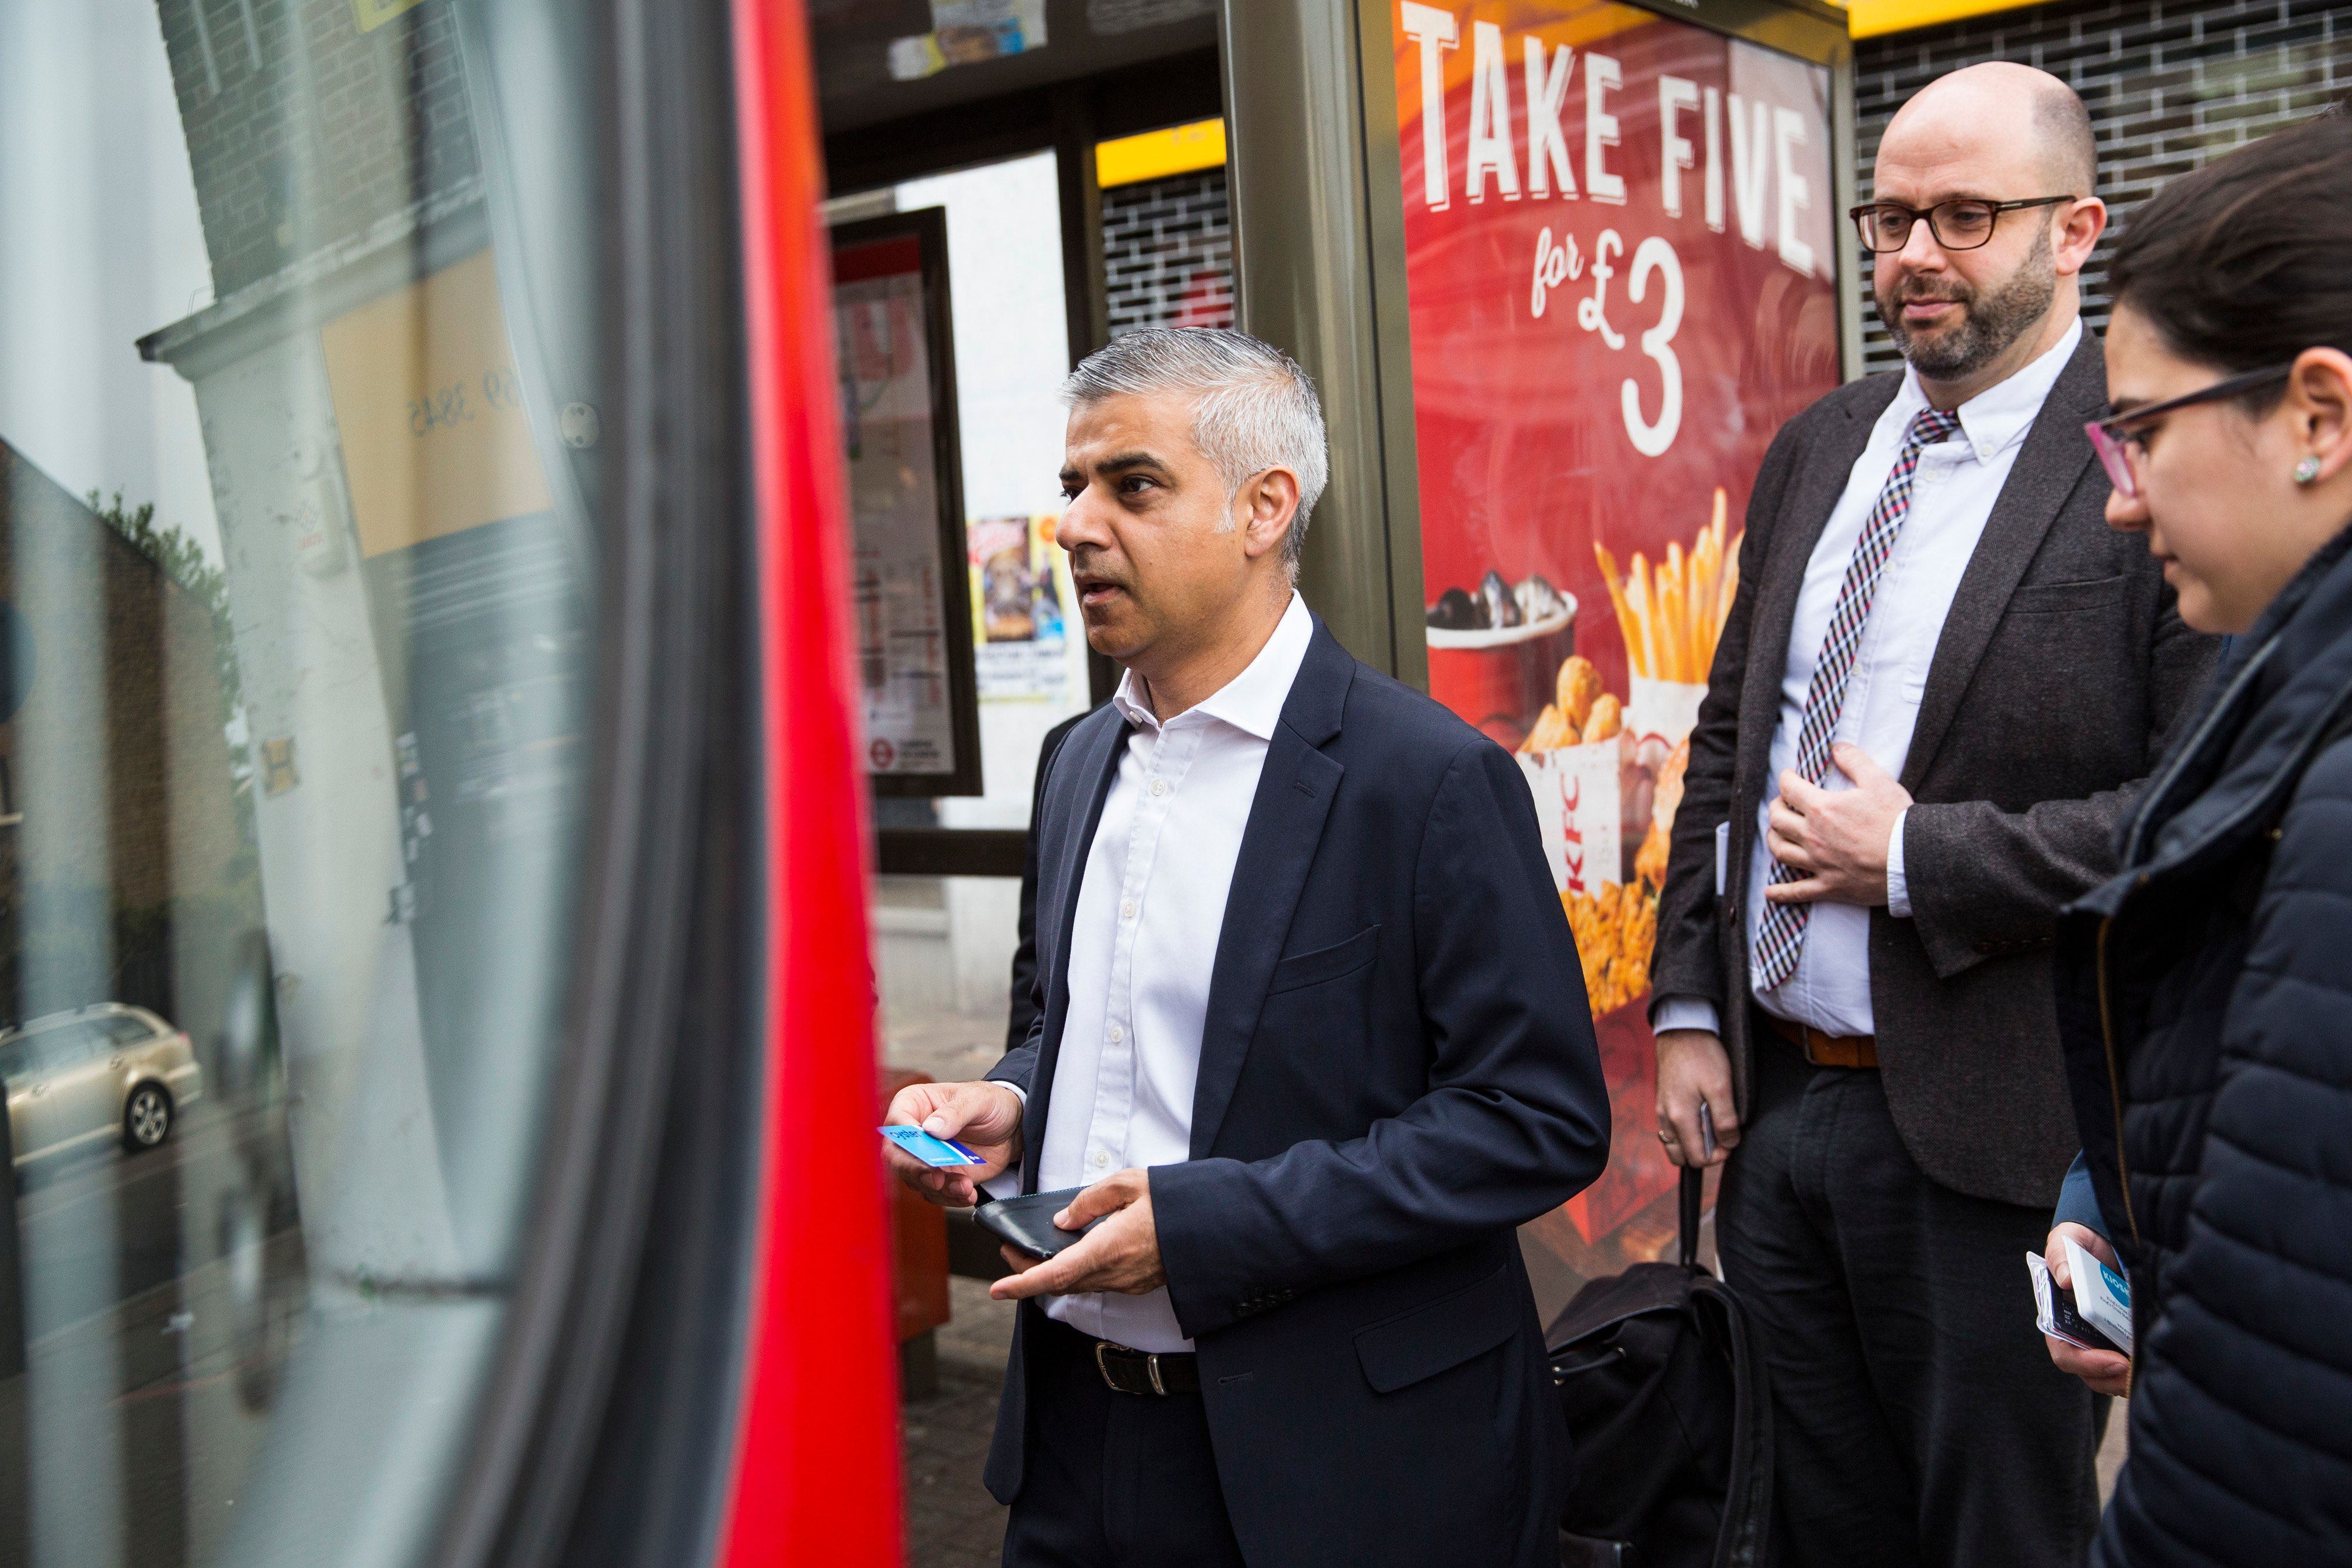 Sadiq Khan Reveals New London '£1.50 Hopper' Bus Fare To Come Into Force In